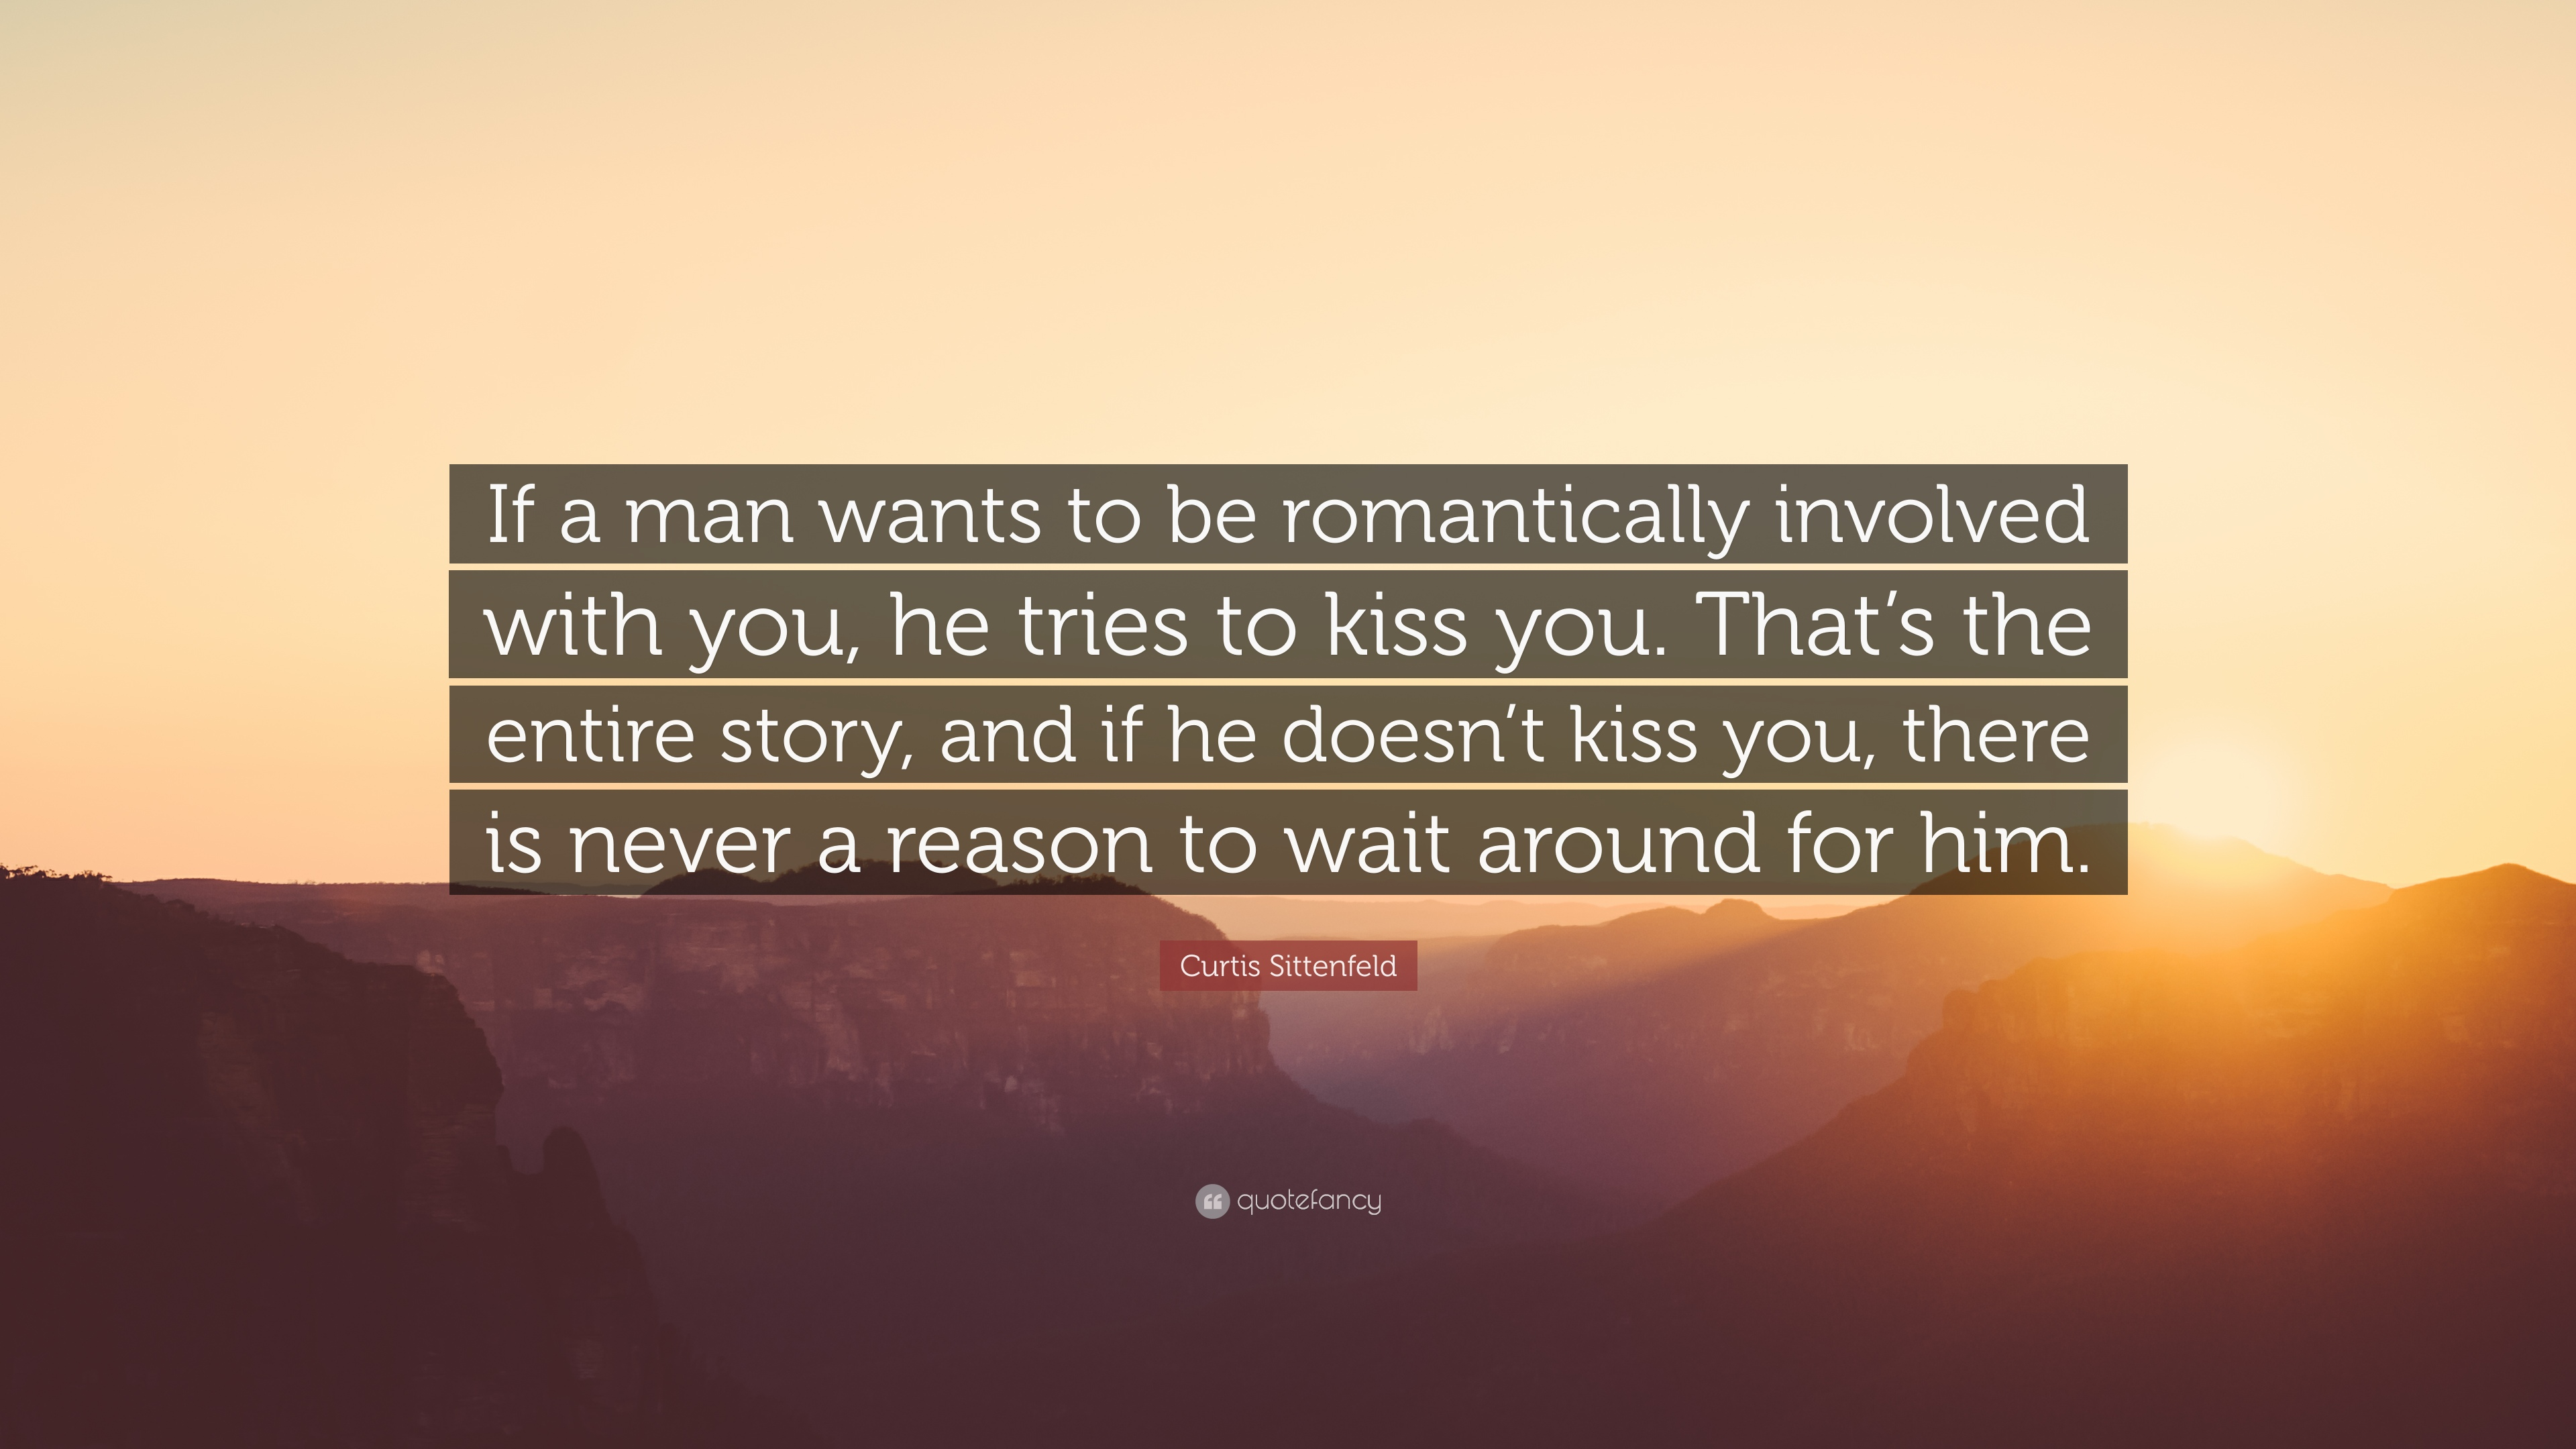 Curtis Sittenfeld Quote: U201cIf A Man Wants To Be Romantically Involved With  You,